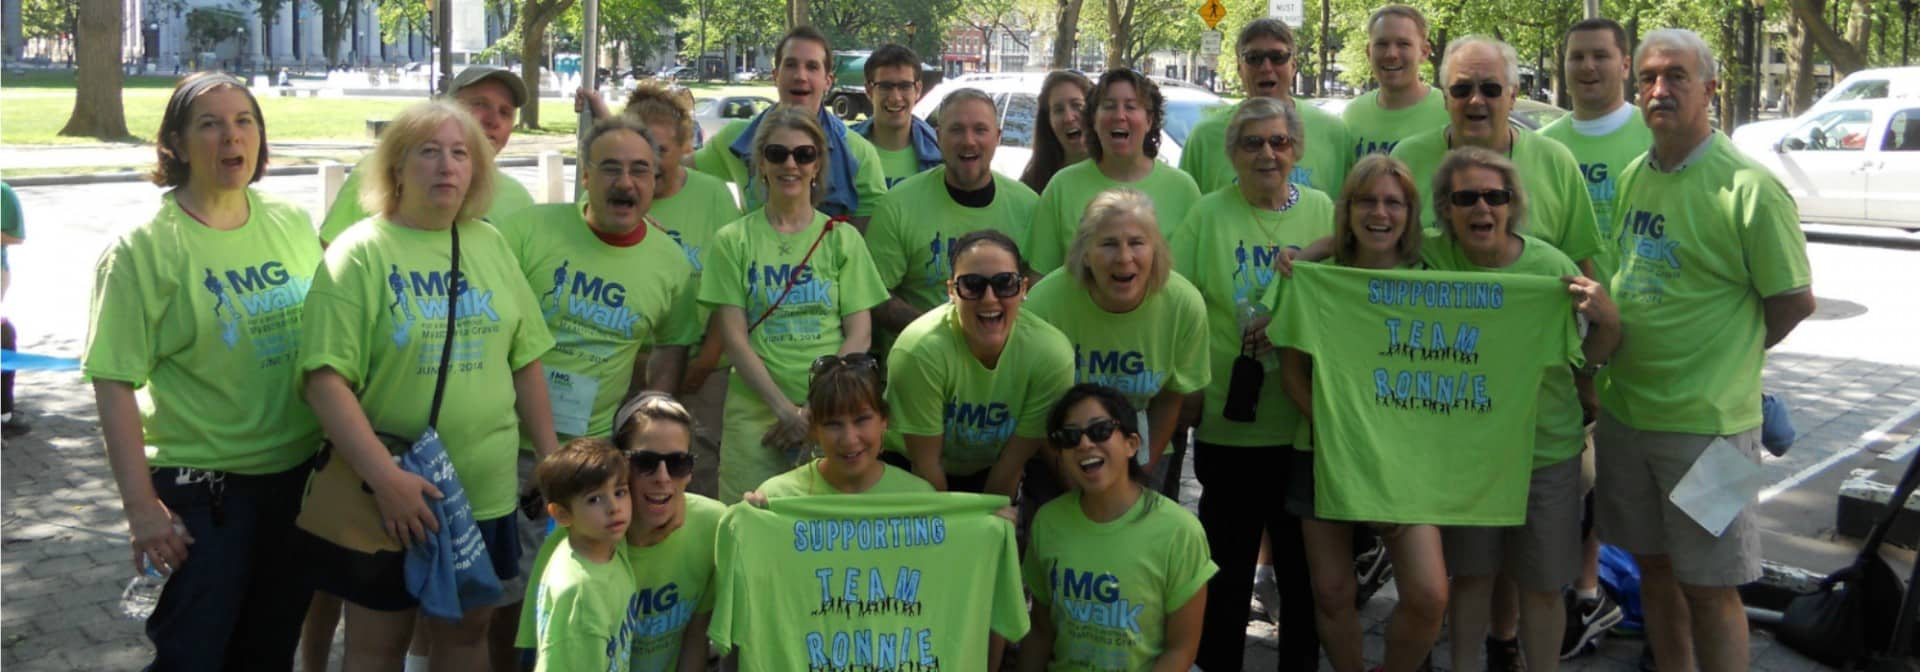 Connecticut MG Walk 2015